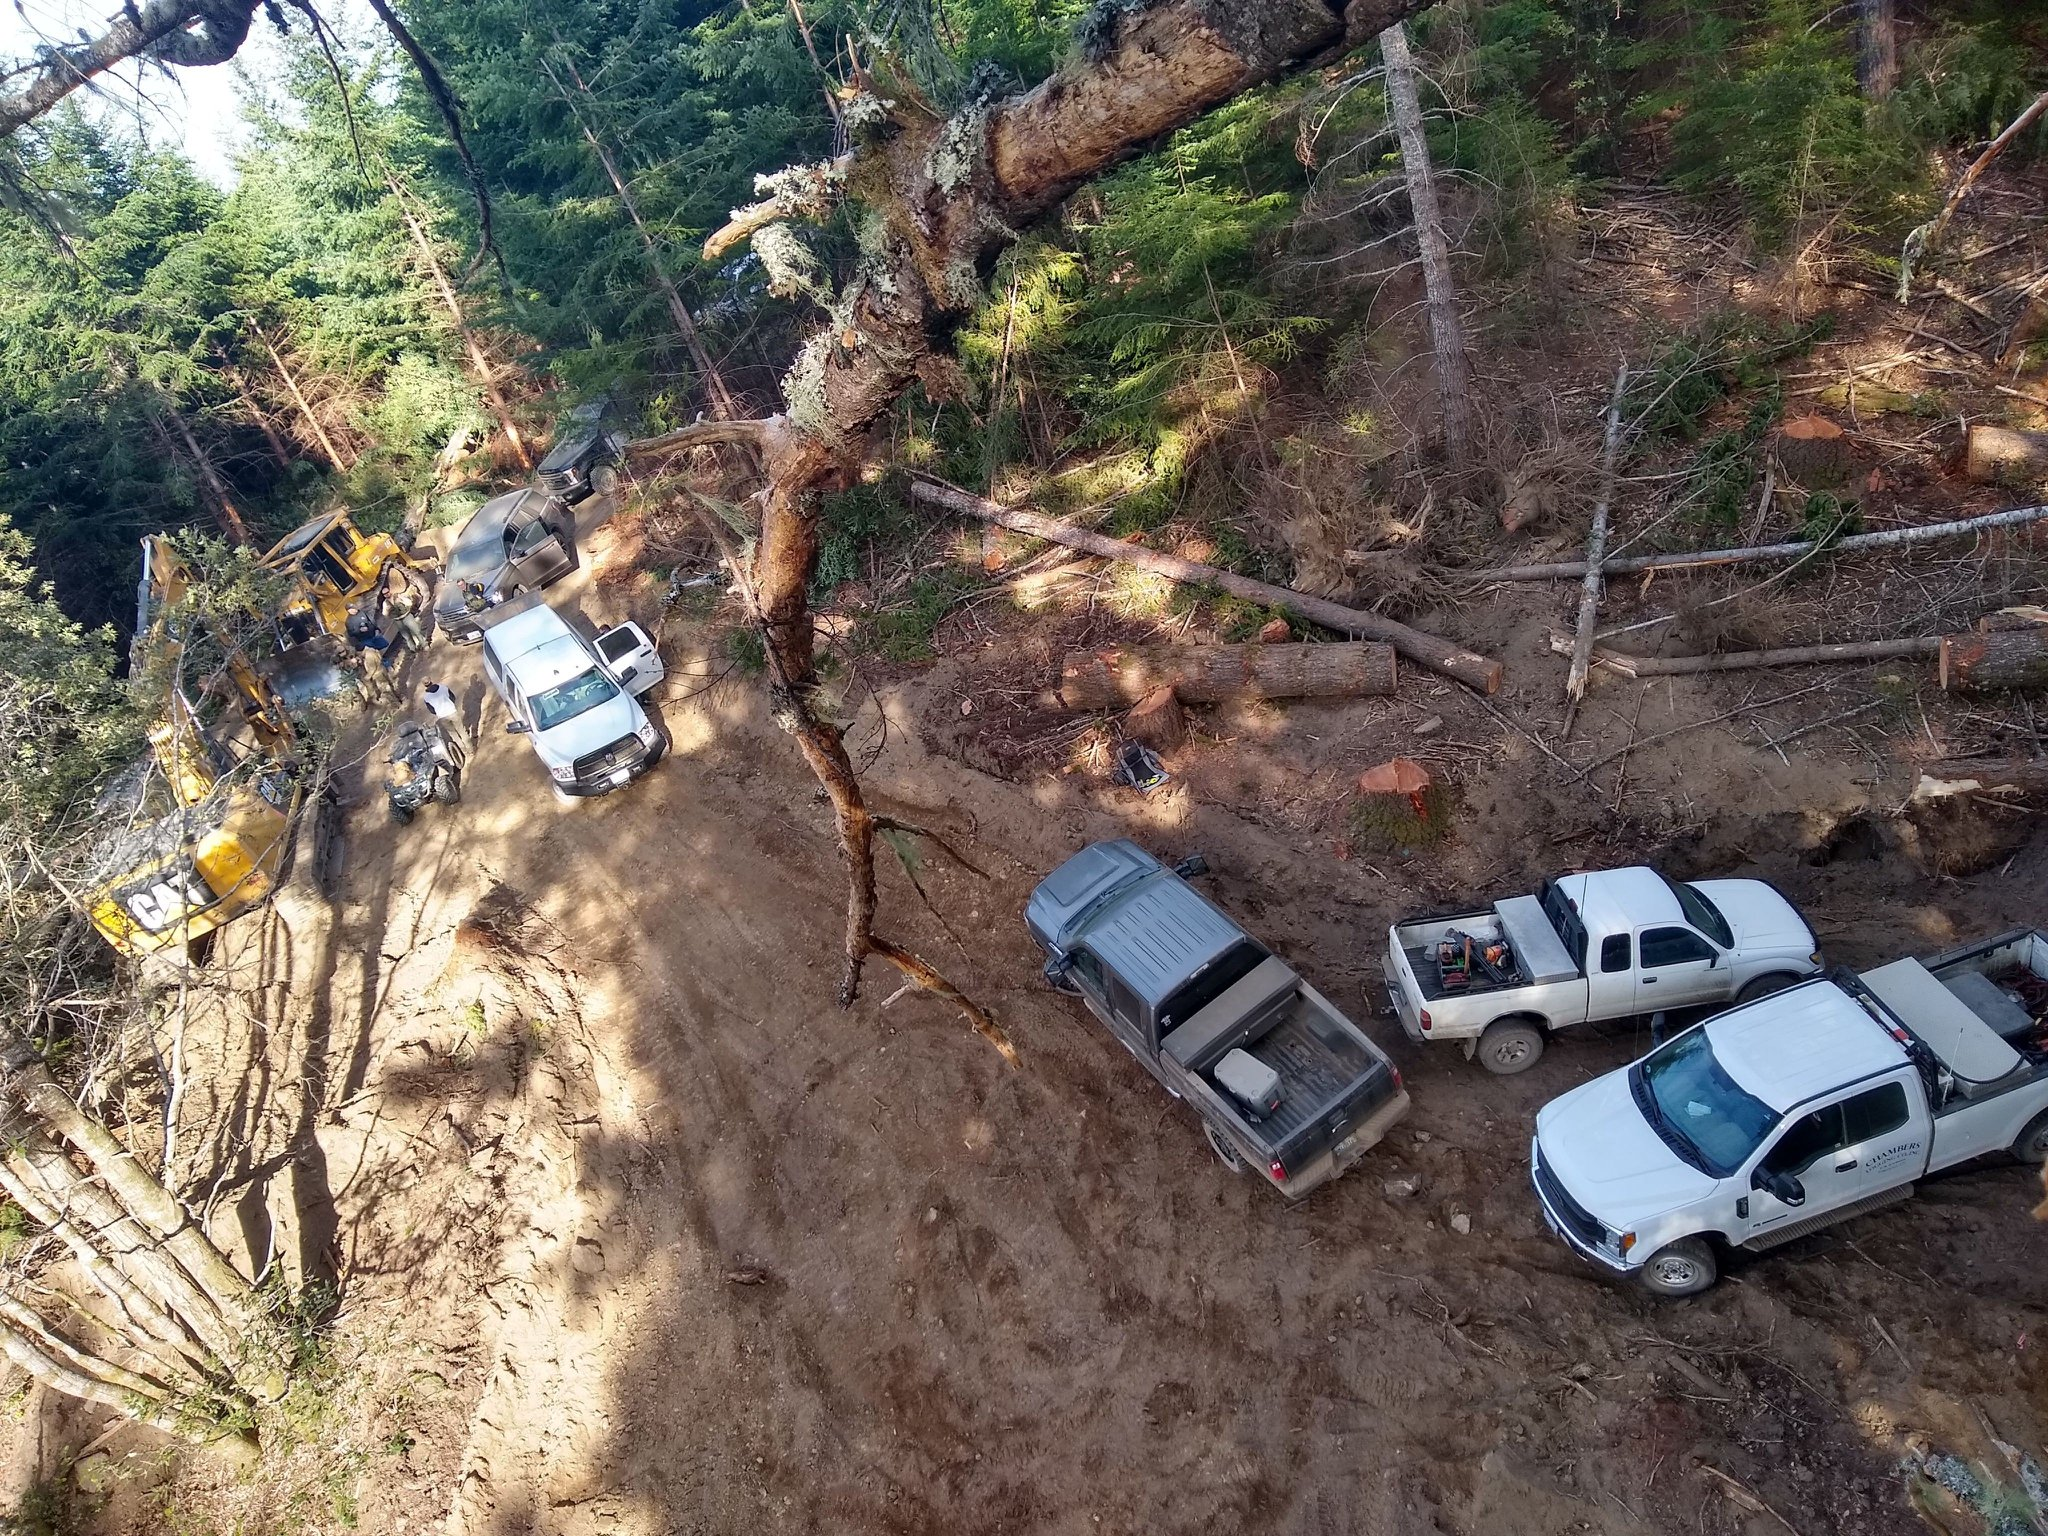 Urgent Alert! Humboldt Redwood Company is felling trees intentionally & dangerously close to Rook's Tree Sit. -